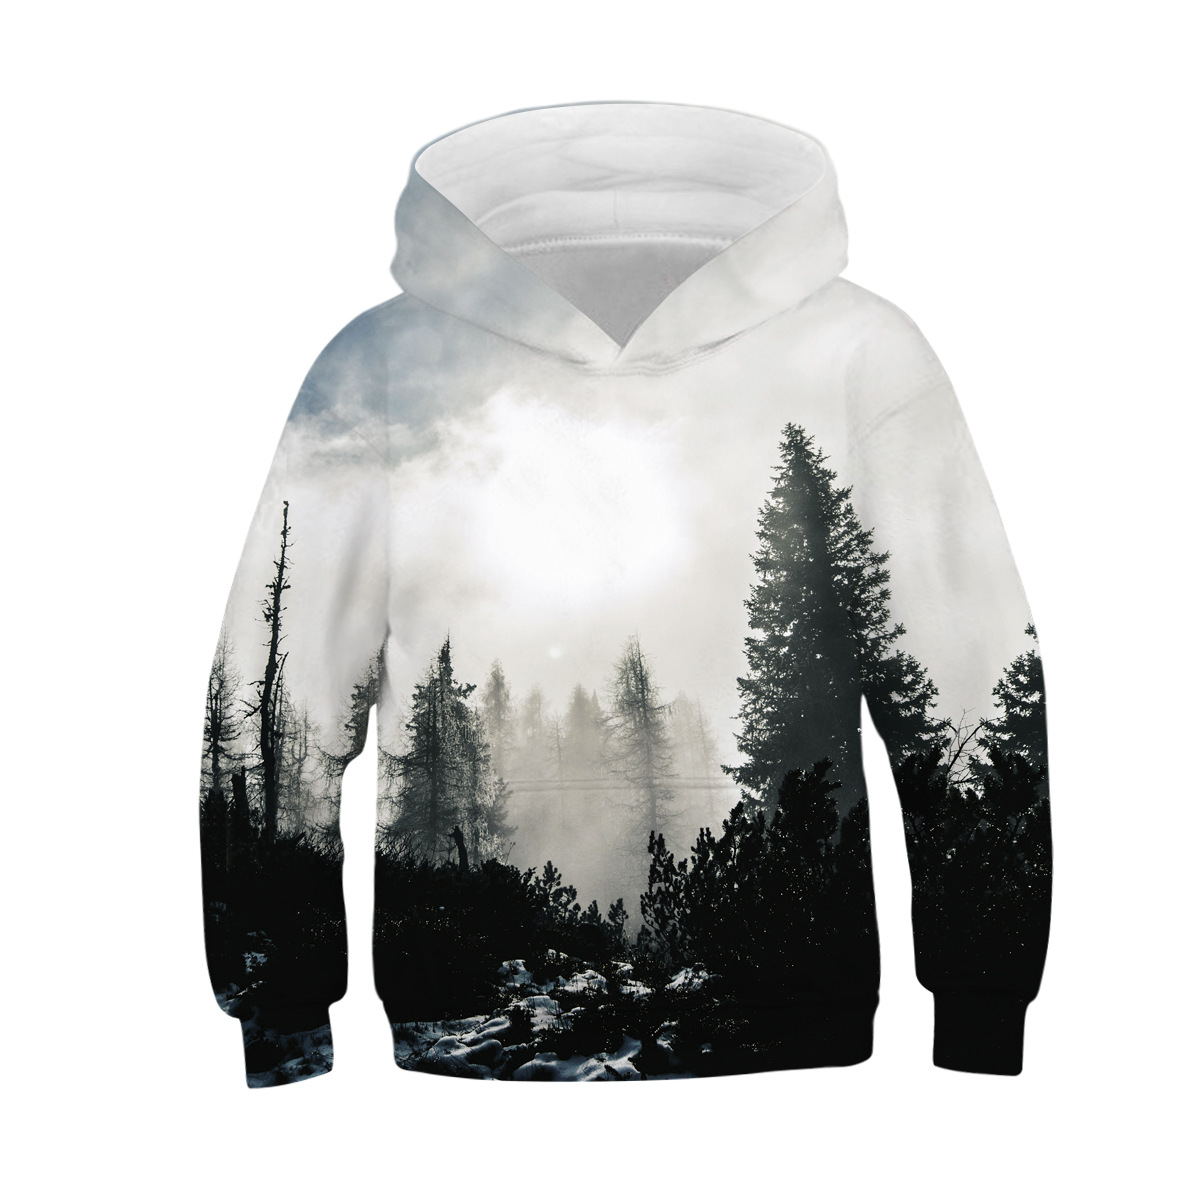 3D Print Children Art Scenery Hoodie girl and boy Fashion Casual hooded clothing Hooded long sleeve Shirts Streetwear(China)